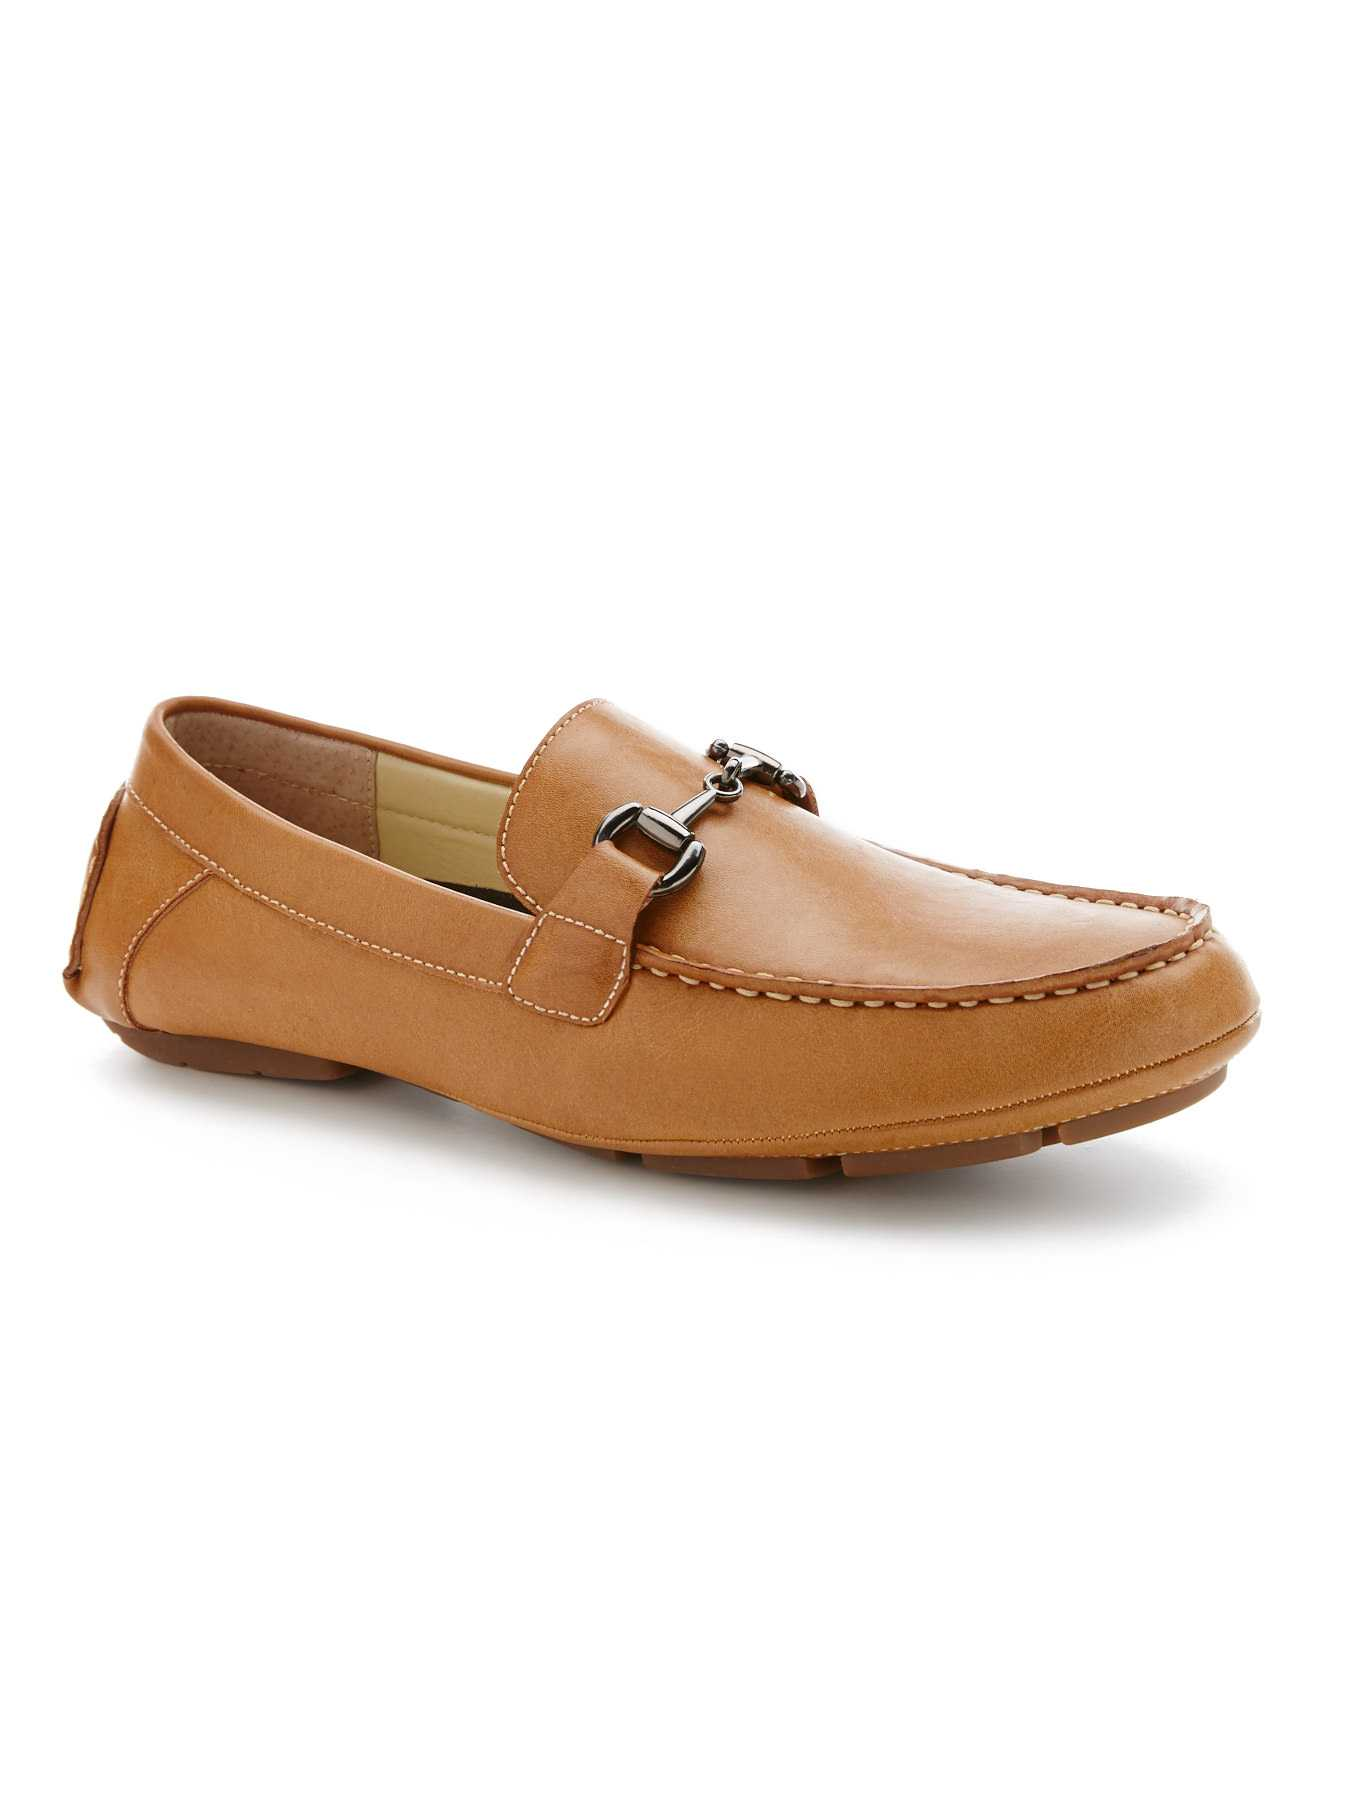 Perry Ellis Nick Loafer Shoe